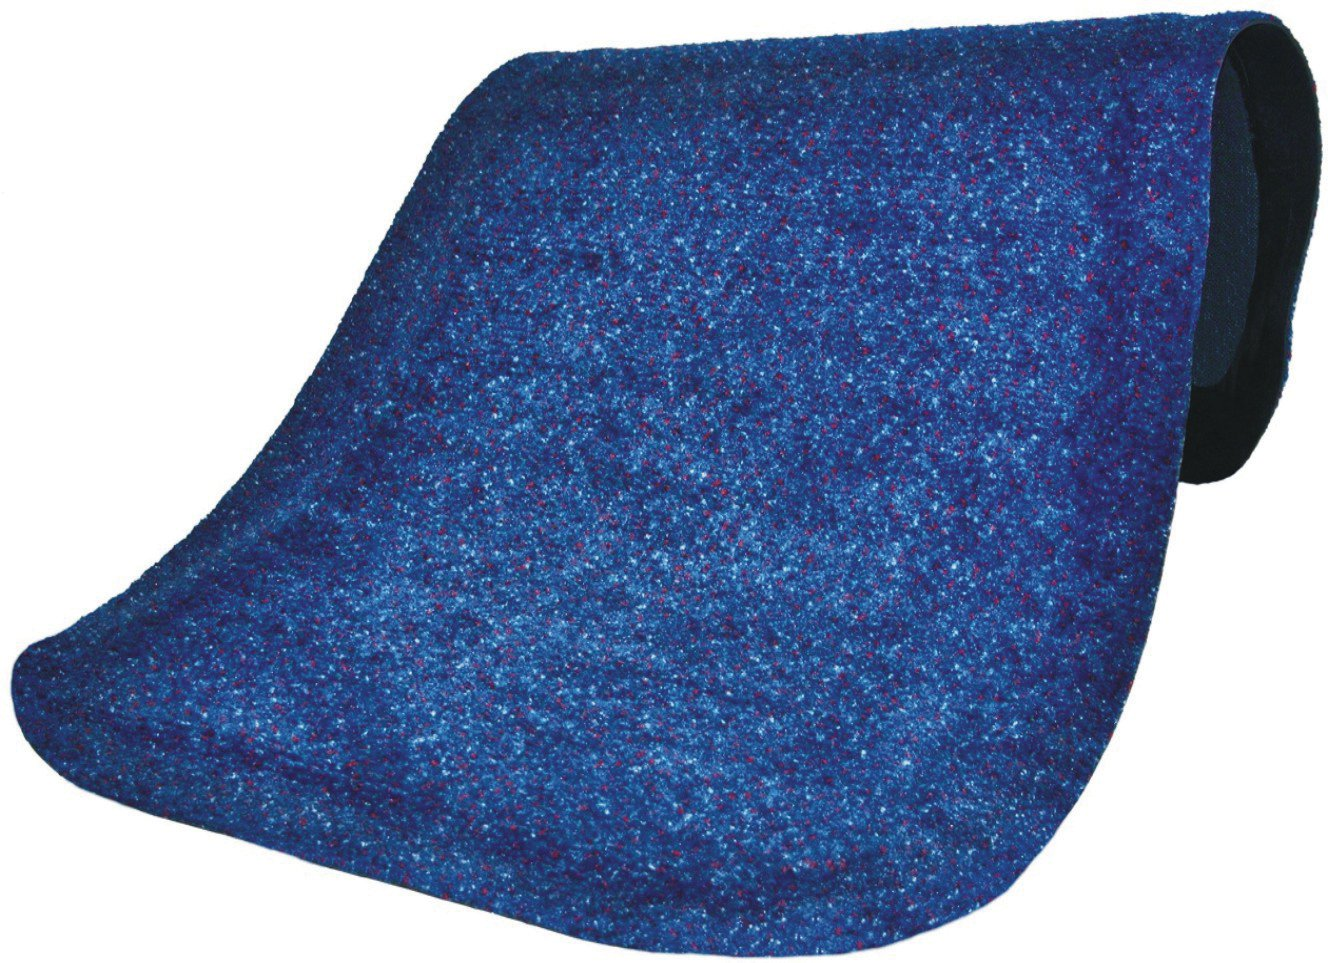 Andersen 446 Navy Spice Nylon Hog Heaven Plush Anti-Fatigue Mat, 5' Length x 3' Width x 5/8'' Thick, For Indoor